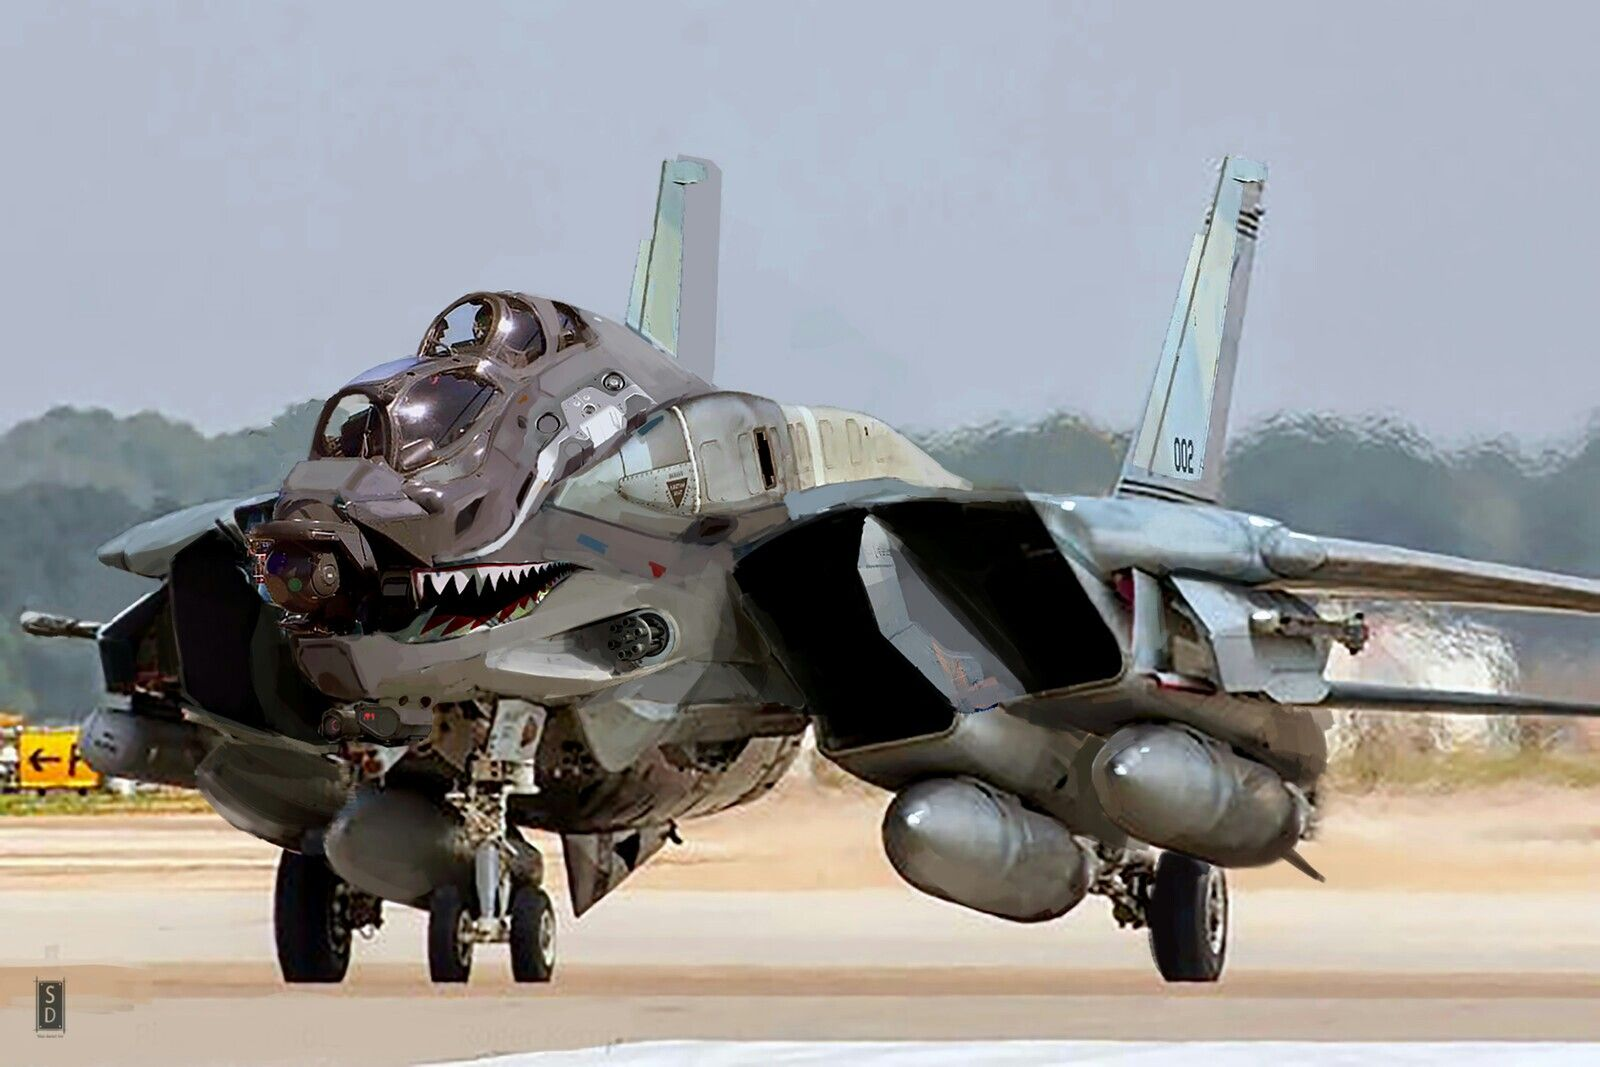 Pin By Shai Daniel On Digital Drawing Fighter Jets Airplane Fighter Fighter Aircraft